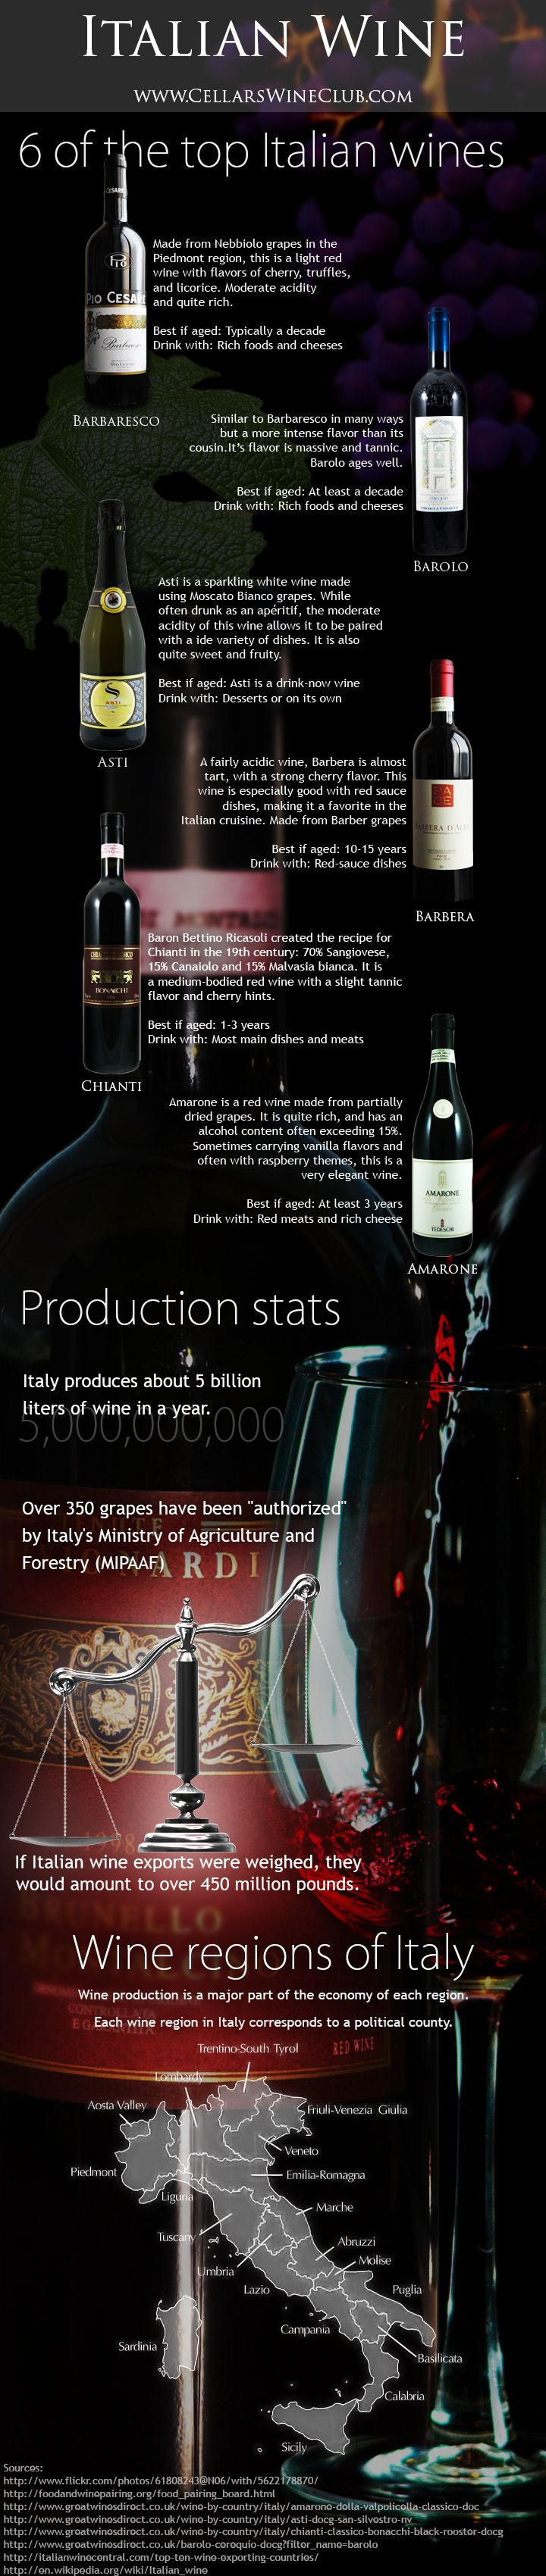 Italian one on the wine and lovely enthusiasts the usa industry       discover contributions of to in Pinteres    wine to worldwide  Read vineyards shoes manufacturers greatest wine the of is